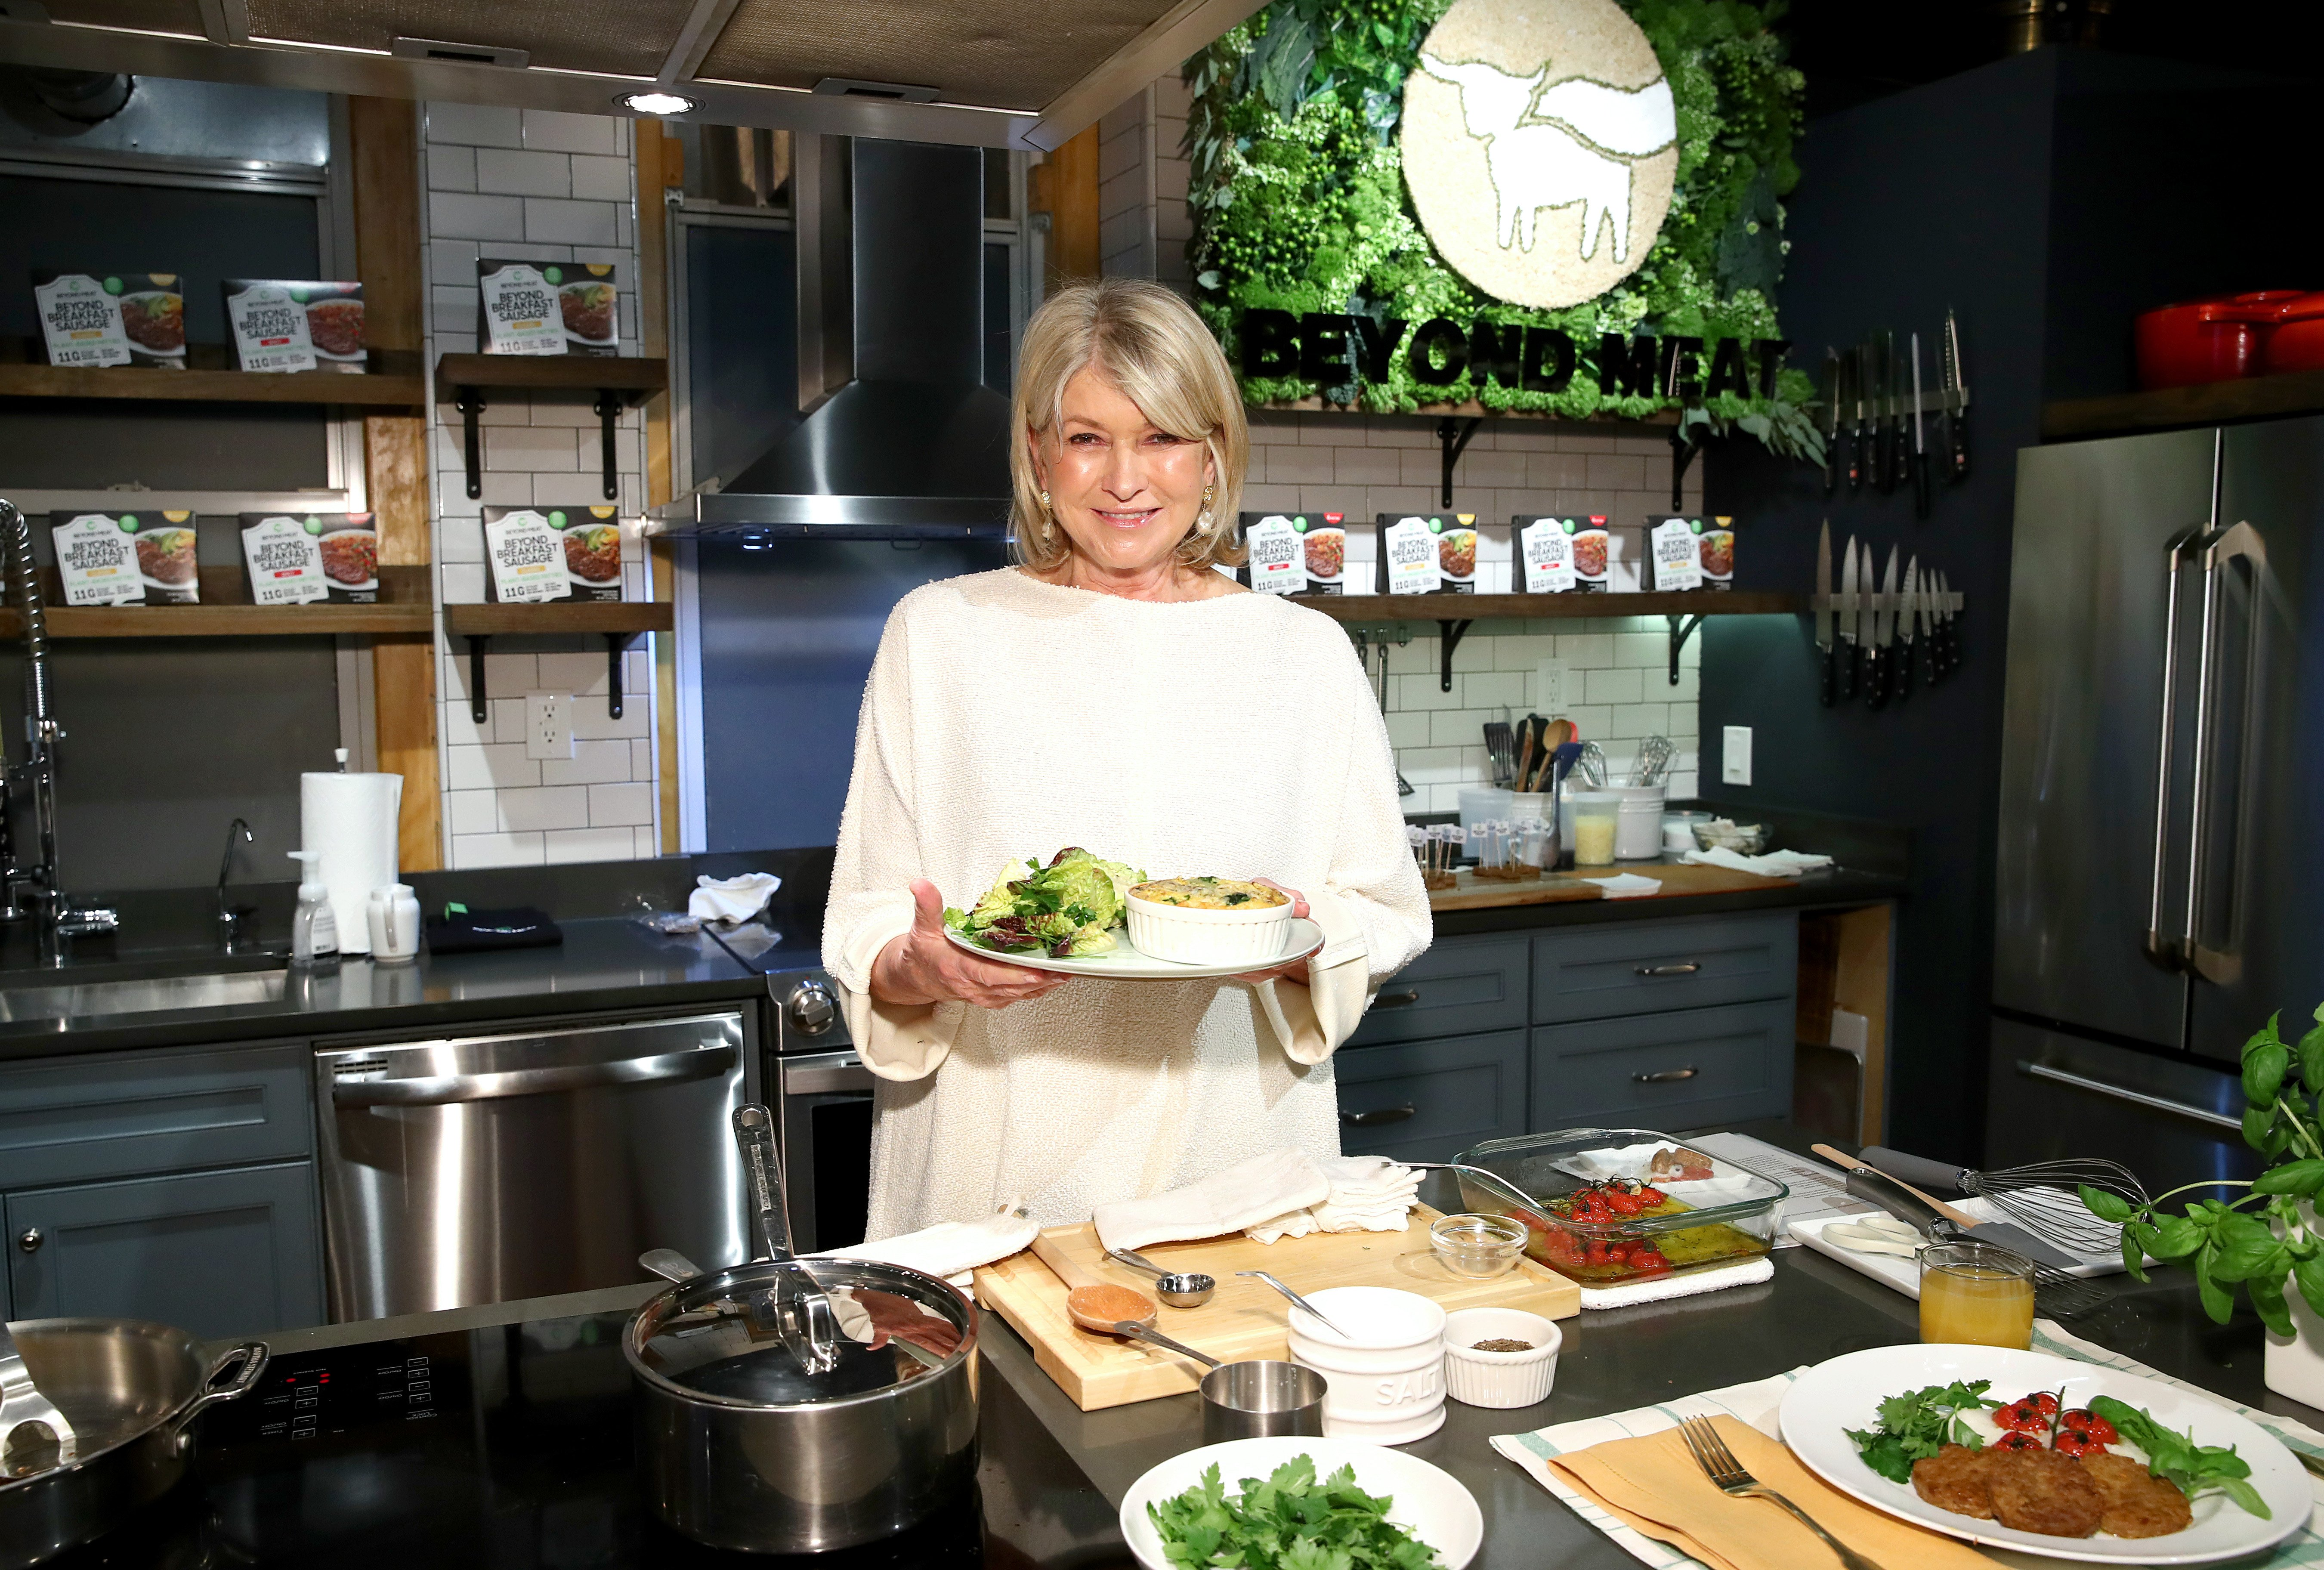 Martha Stewart prepares a meal in collaboration with Beyond Meat in New York City on March 10, 2020   Photo: Getty Images